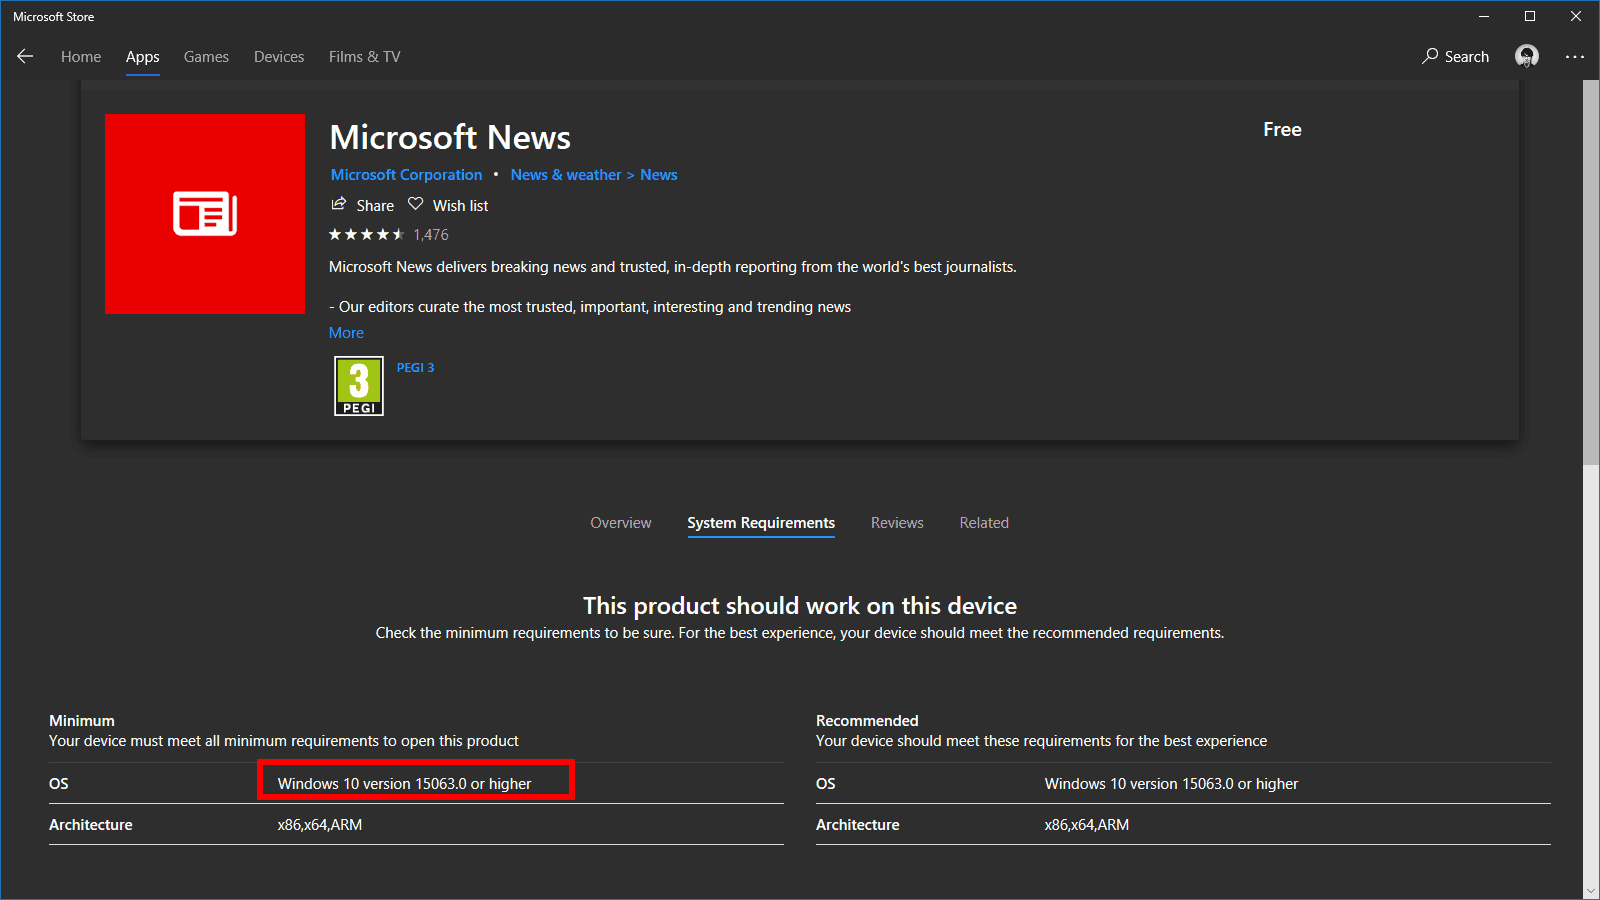 Microsoft News now requires 15063